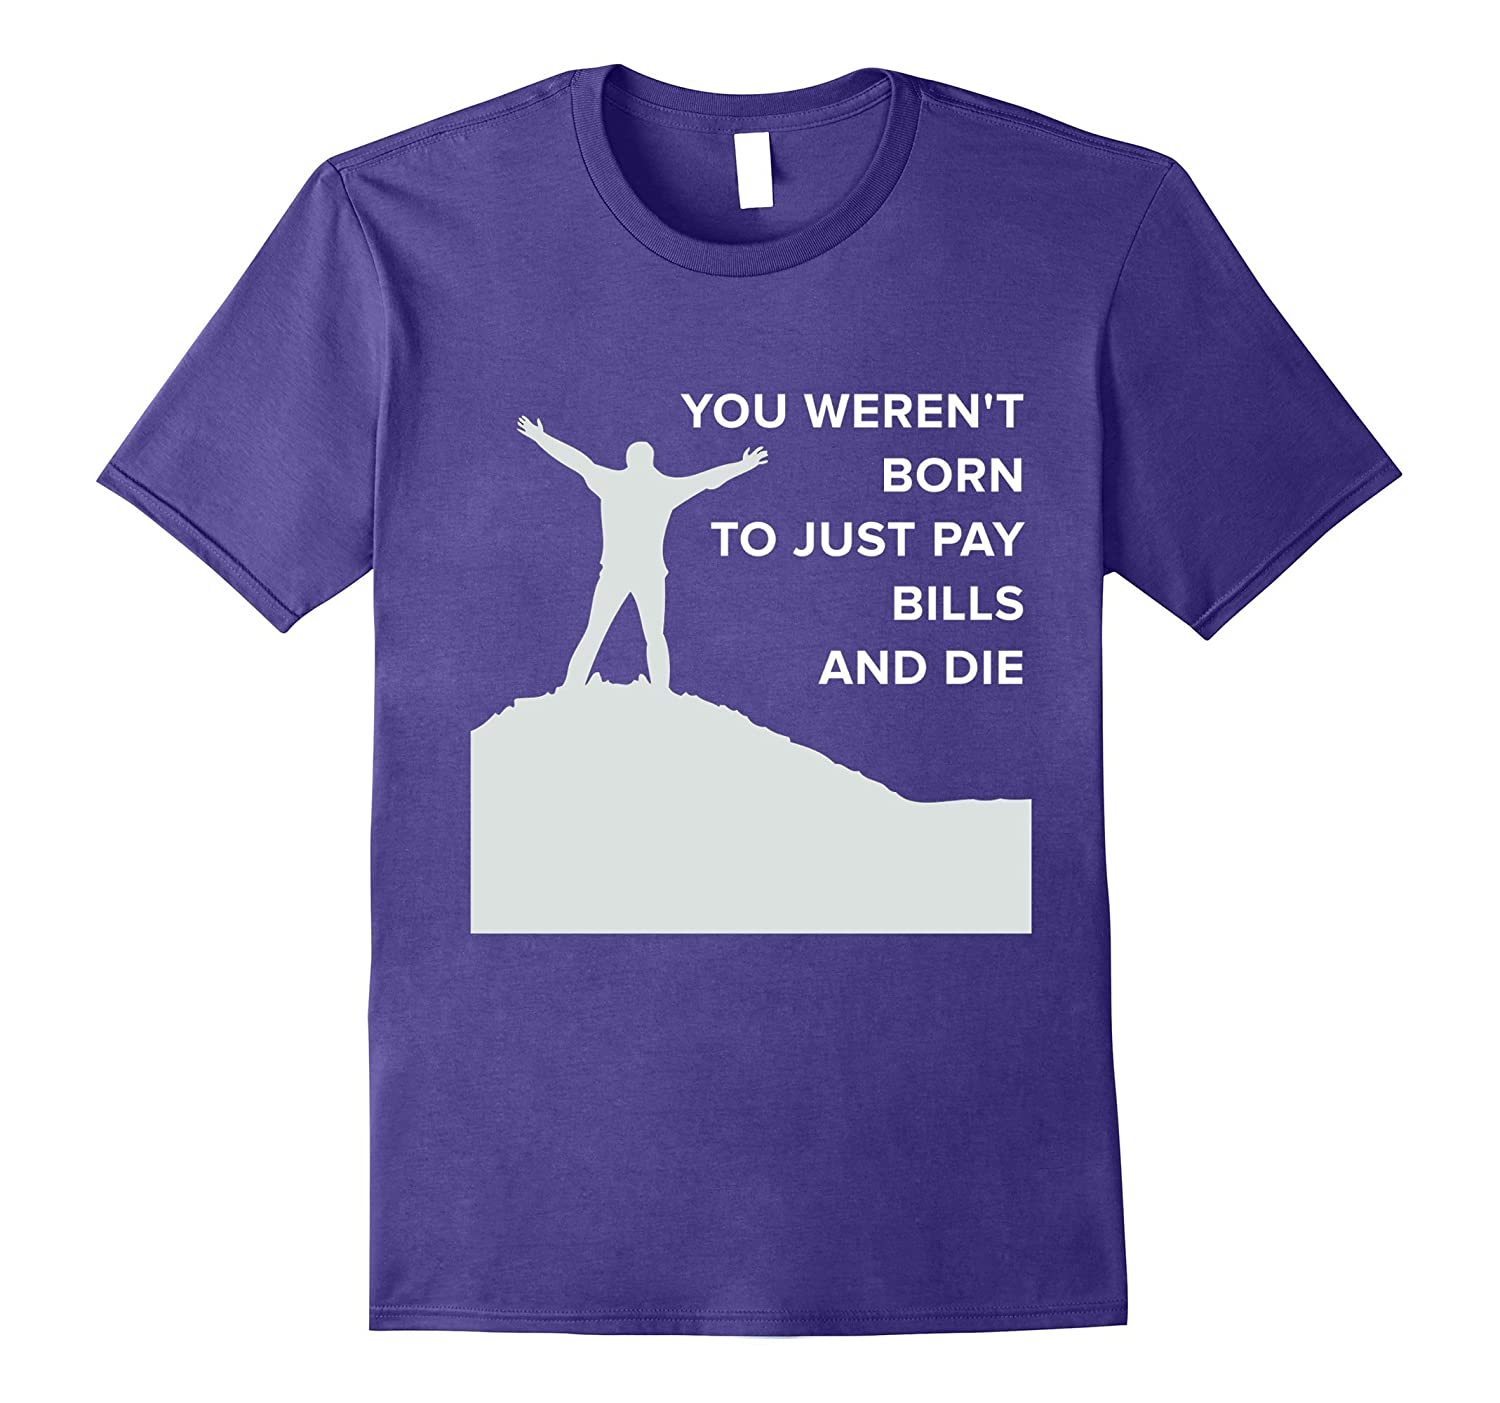 BORN TO LIVE LIFE T-SHIRT Make the most of it Tee